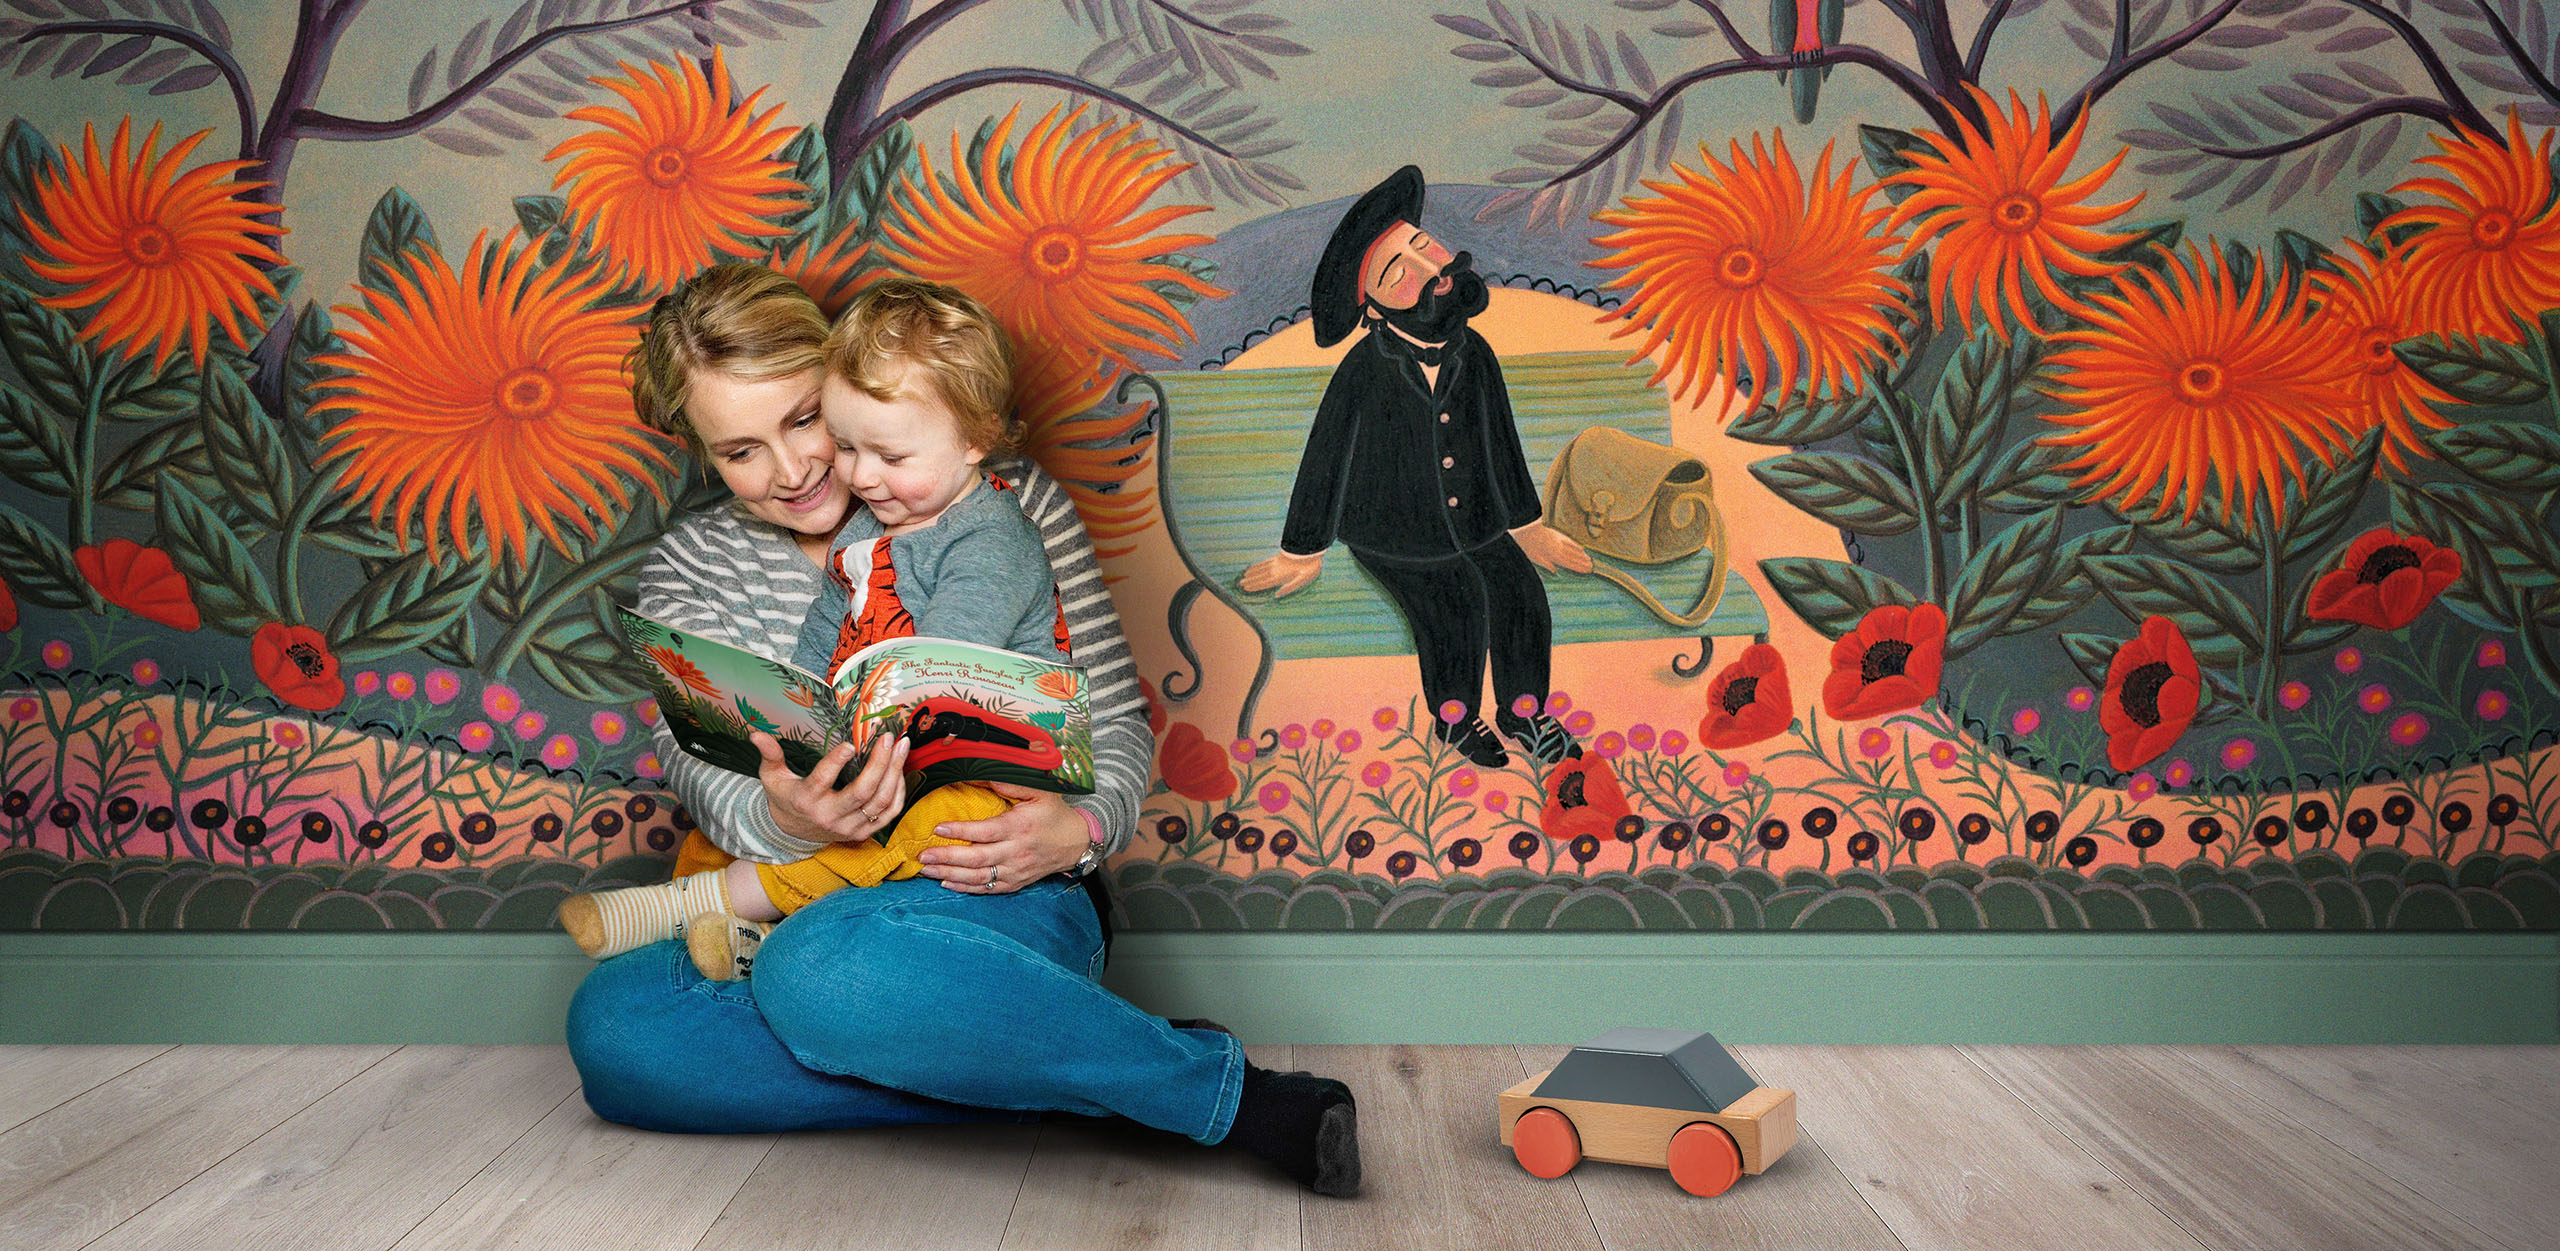 Beautifully Illustrated Children's Books. Photography by Tim Hudson, Louis Sinclair & Craig Dallas